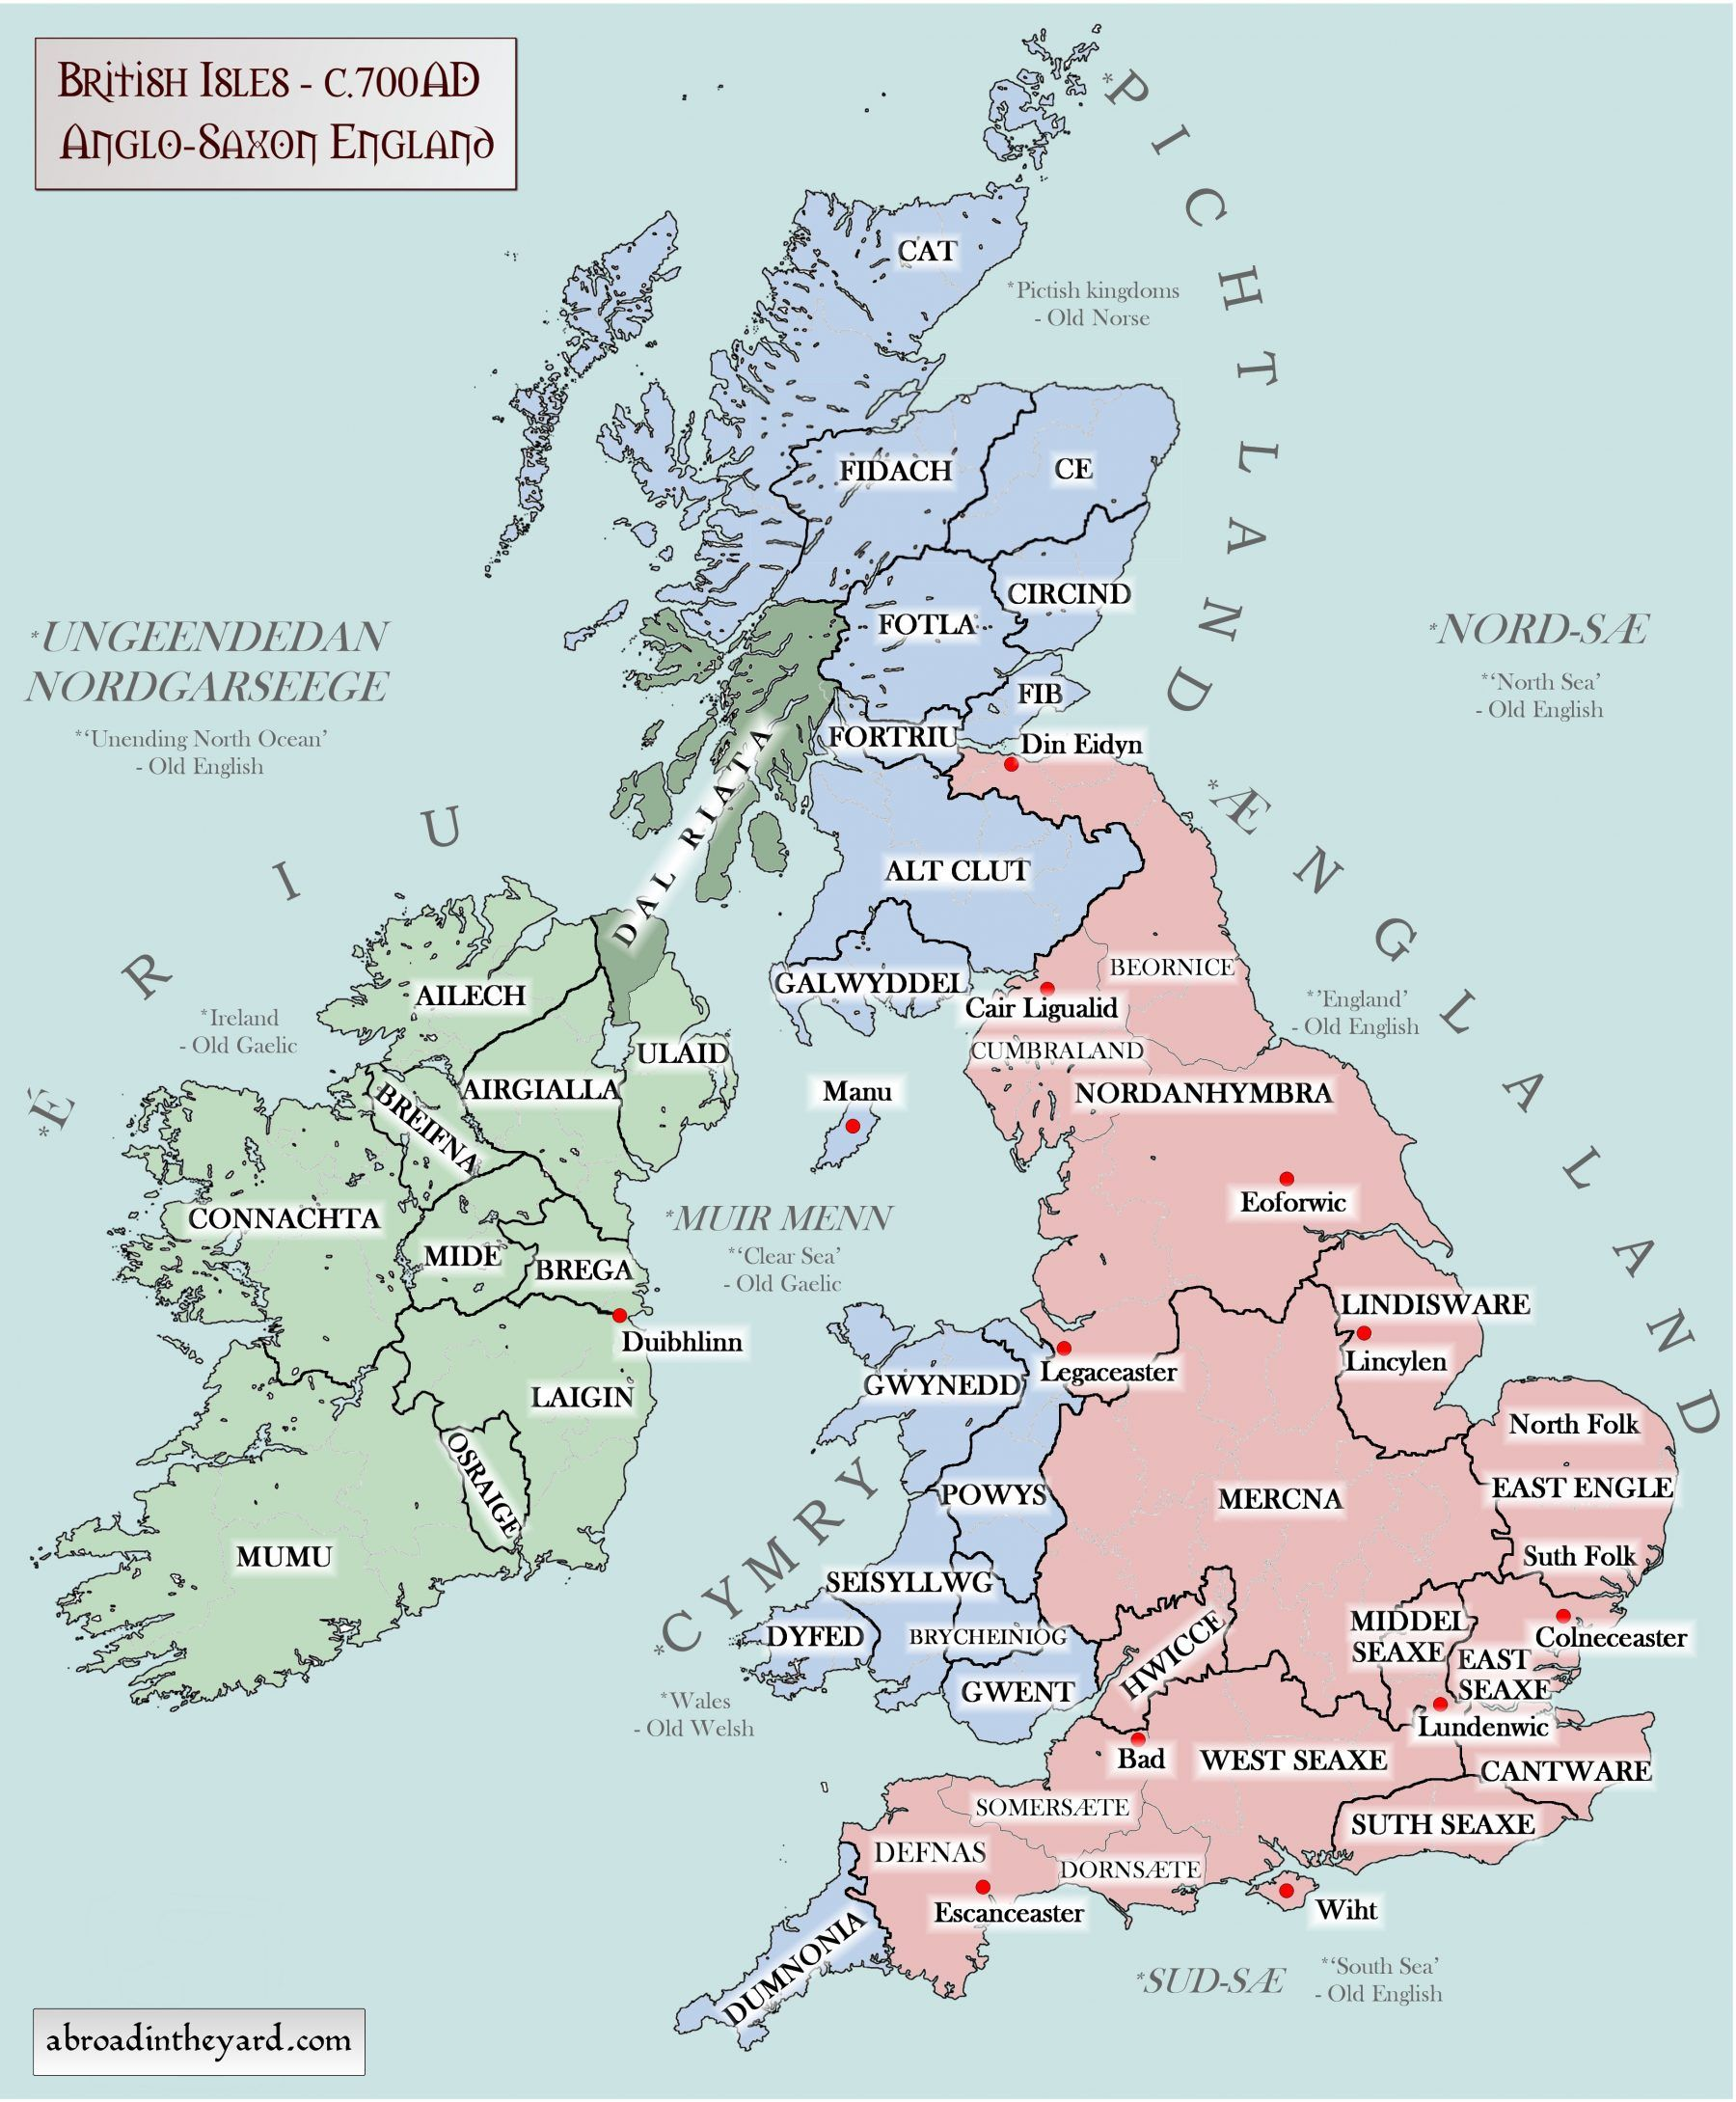 Maps of britain and irelands ancient tribes kingdoms and dna maps of britain and irelands ancient tribes kingdoms and dna british isles 4 anglo gumiabroncs Gallery